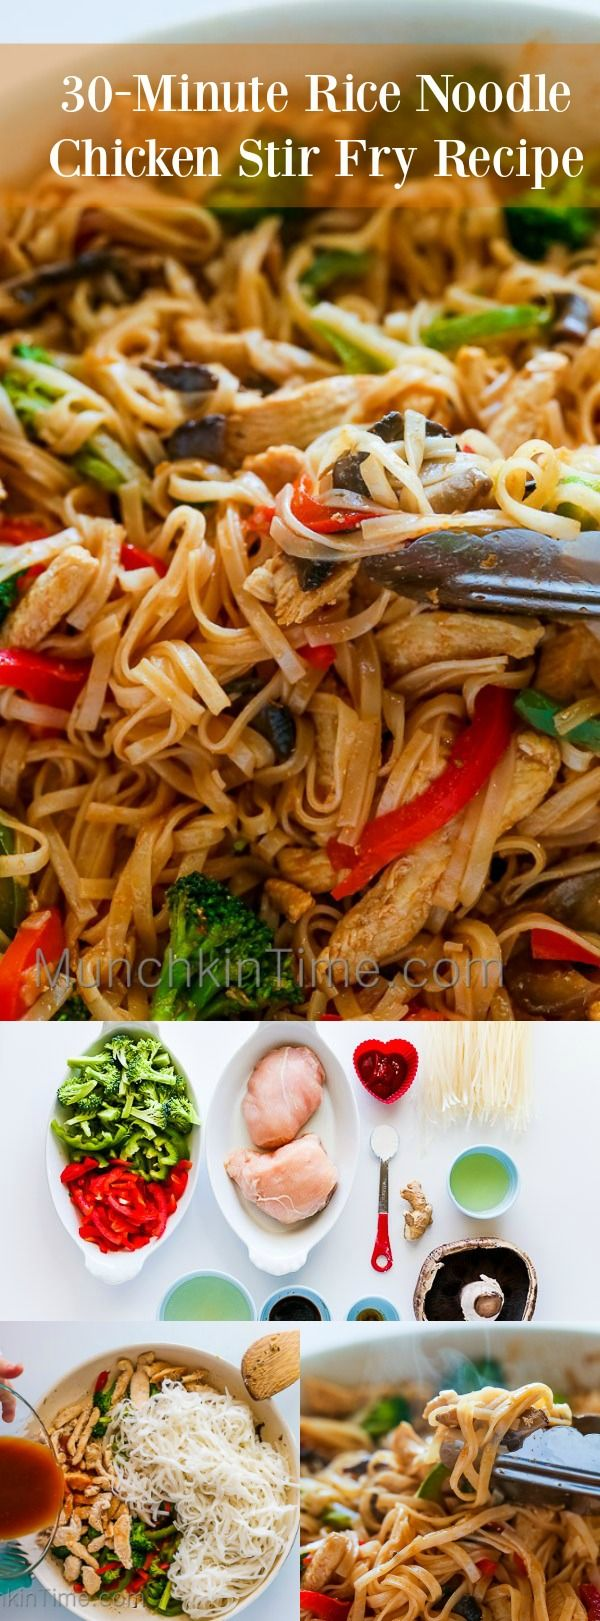 30-Minute Stir Fry Recipe with Chicken and Rice Noodles - Healthy and so delicious Stir-Fry with rice noodles, chicken, broccoli and etc. -- www.munchkintime.com #stirfryrecipe